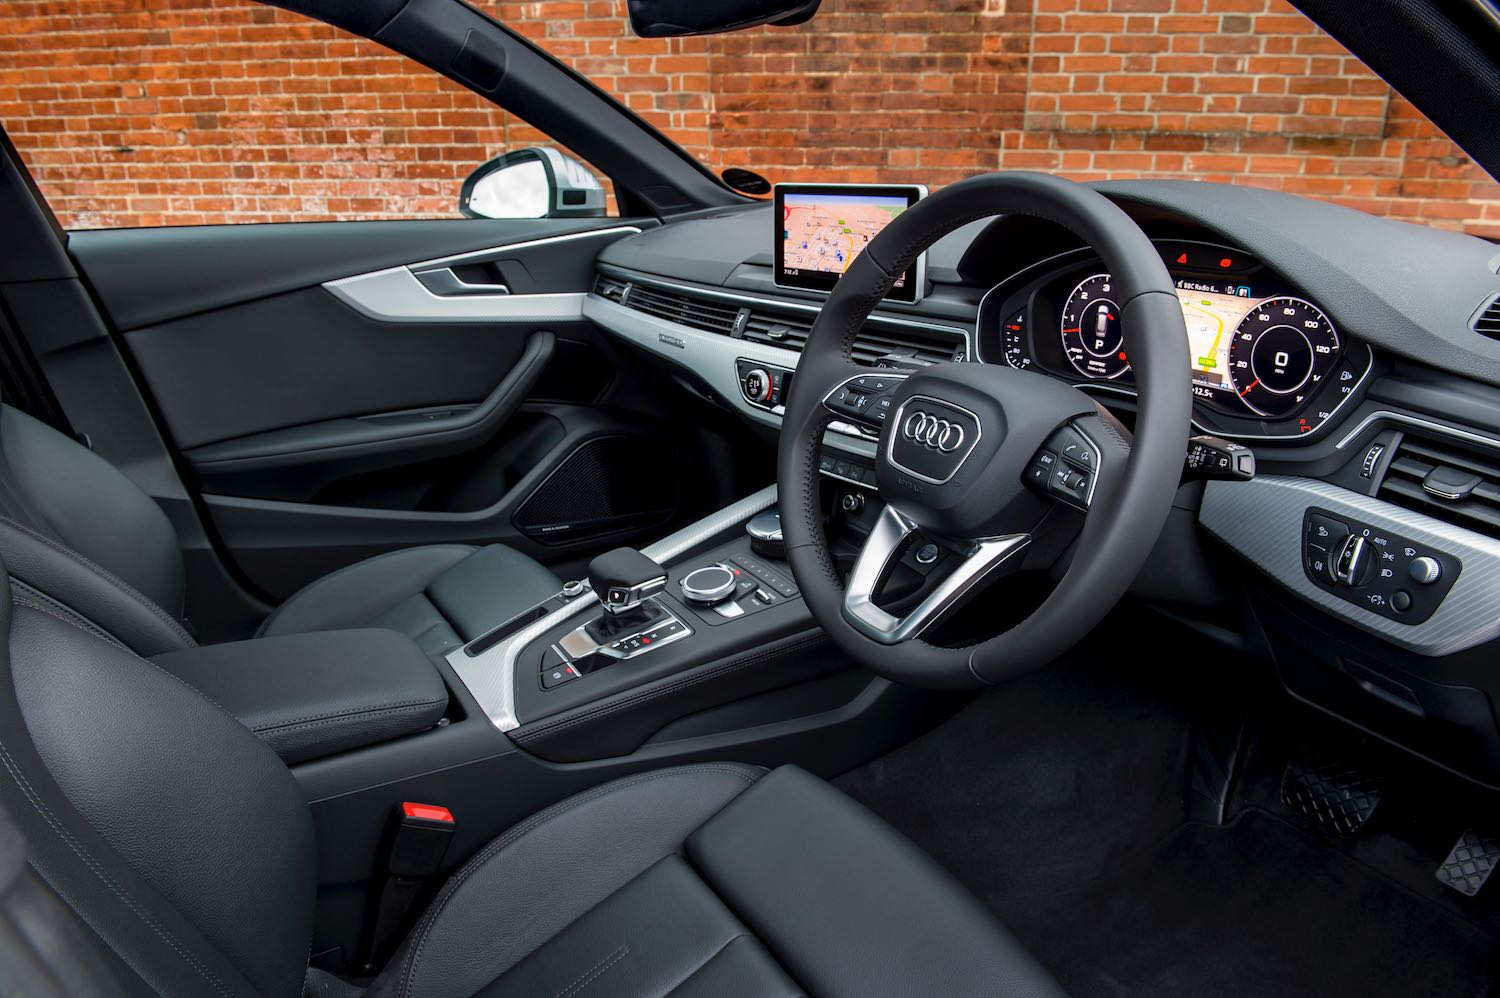 Neil Lyndon reviews the Audi Allroad for drive-13